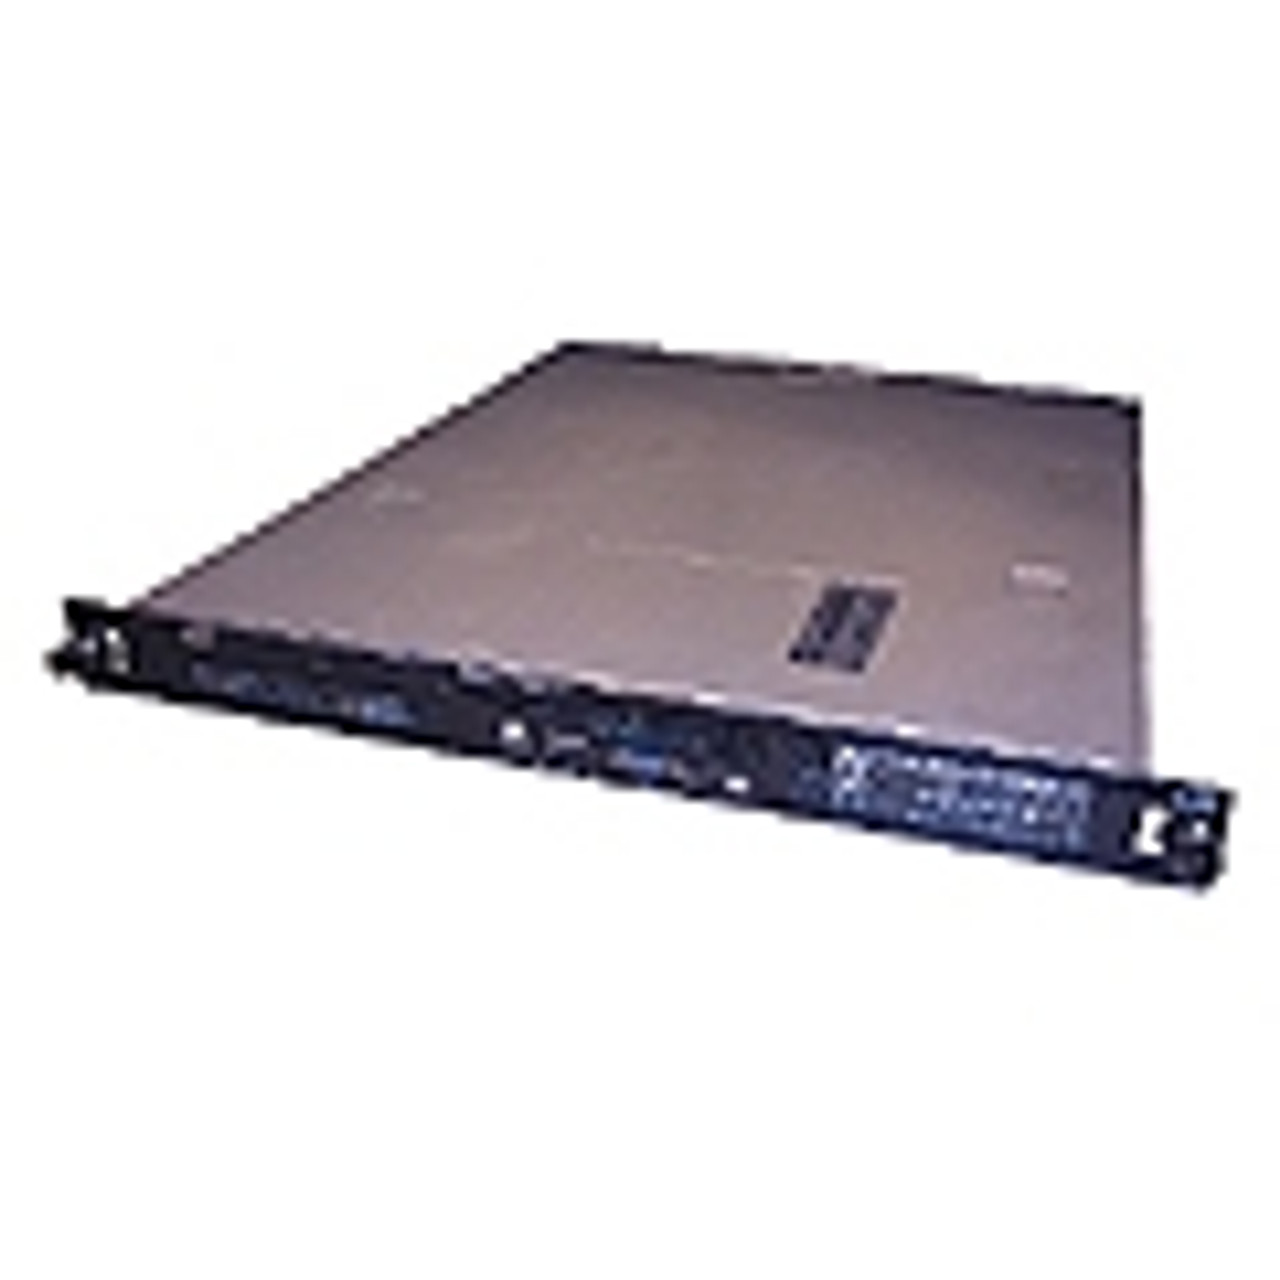 Dell PowerEdge R200 Servers & Replacement Spare Parts